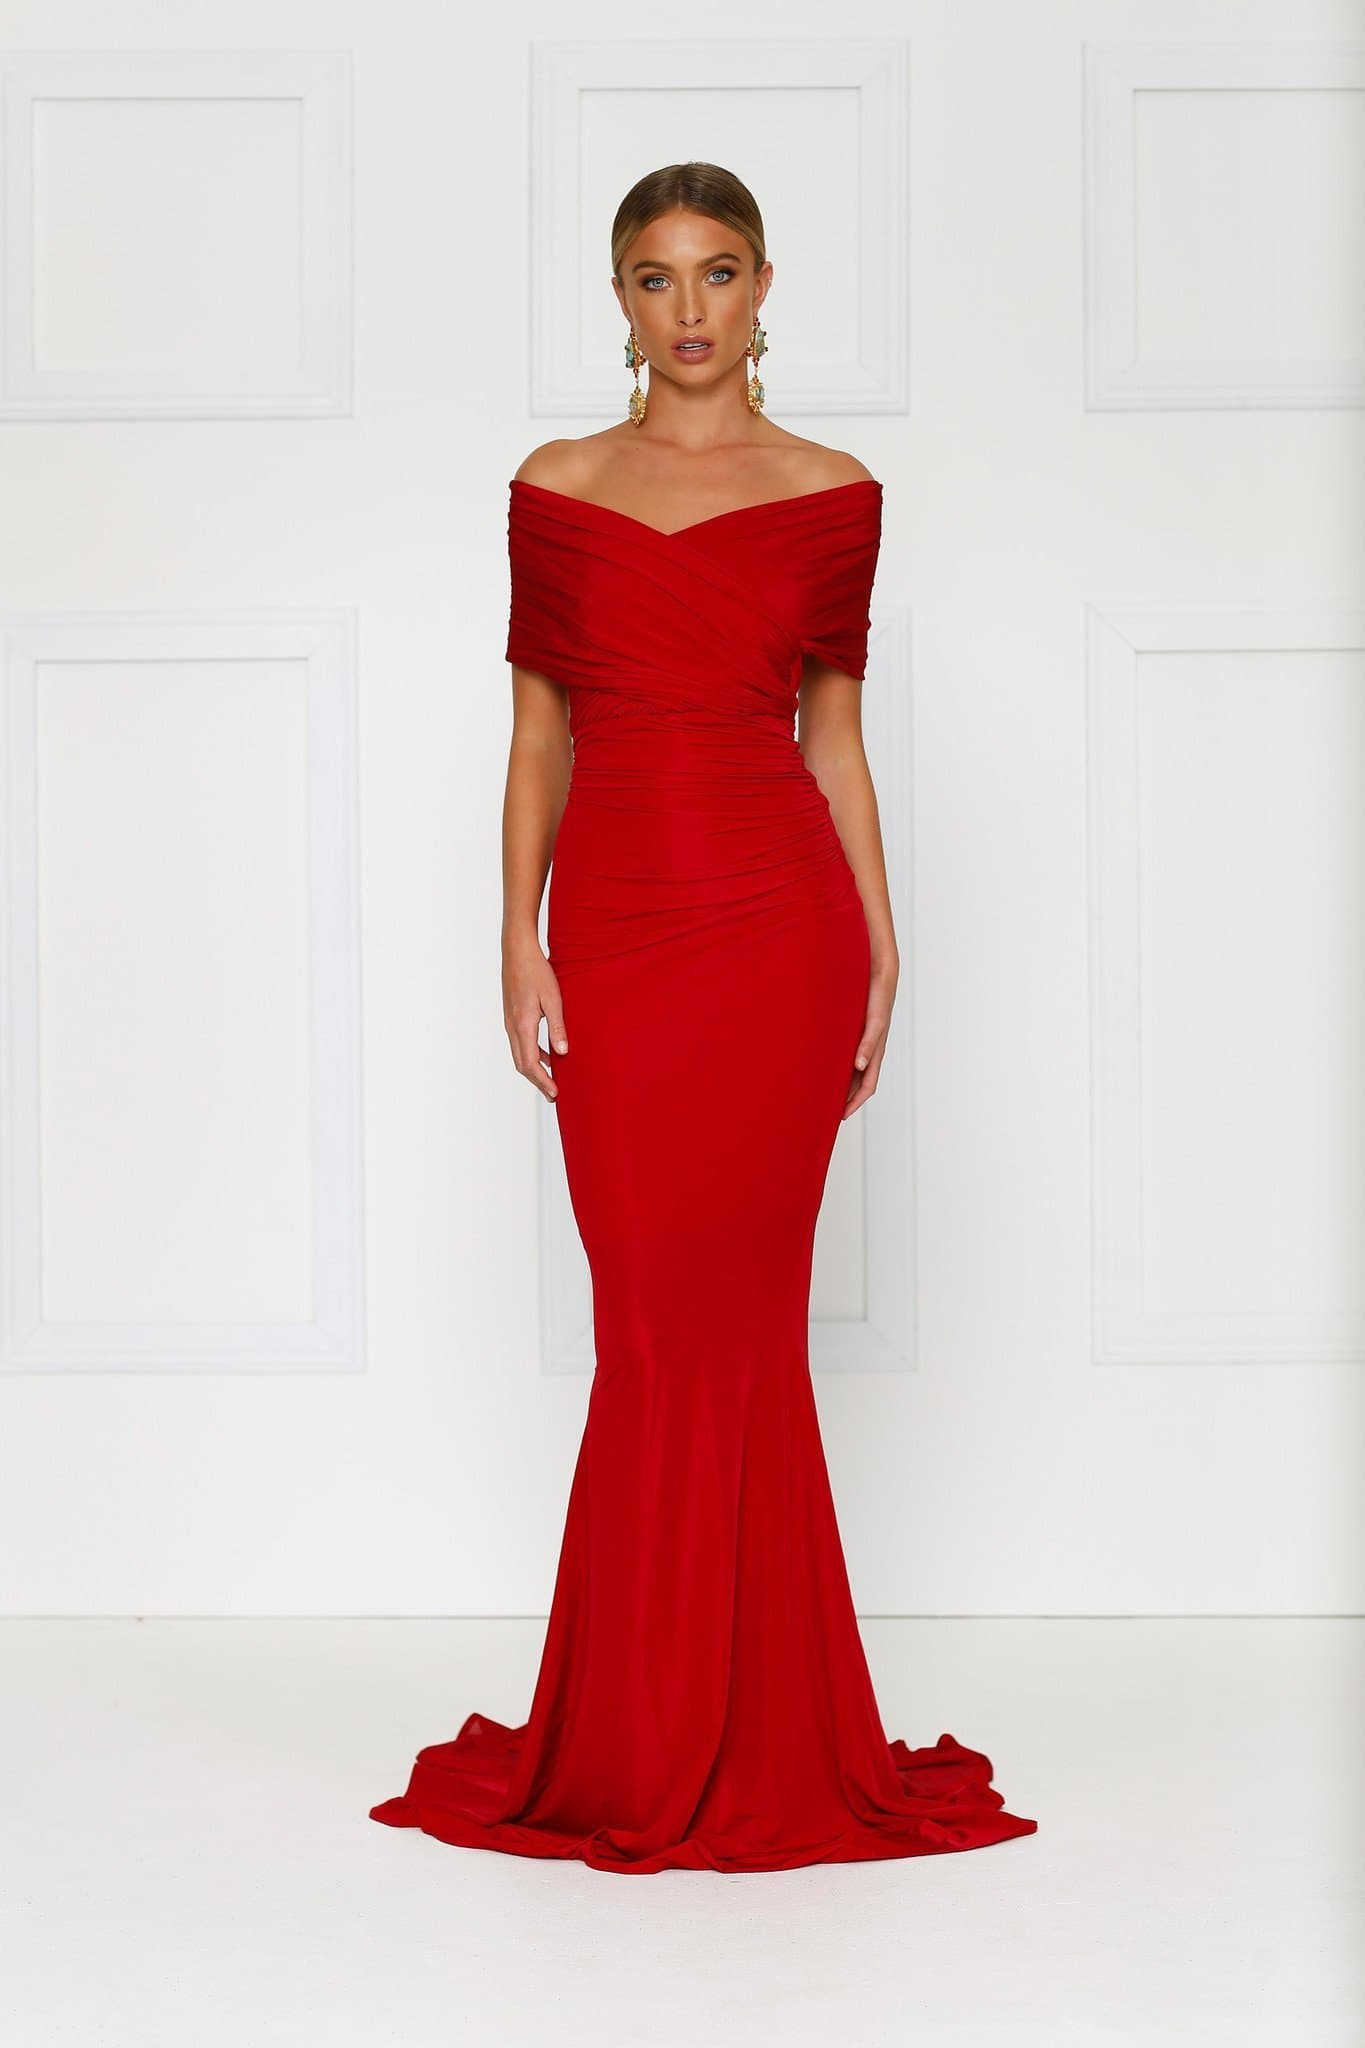 Campanule Formal Gown - Wine Red Jersey Off Shoulder Ruched Dress